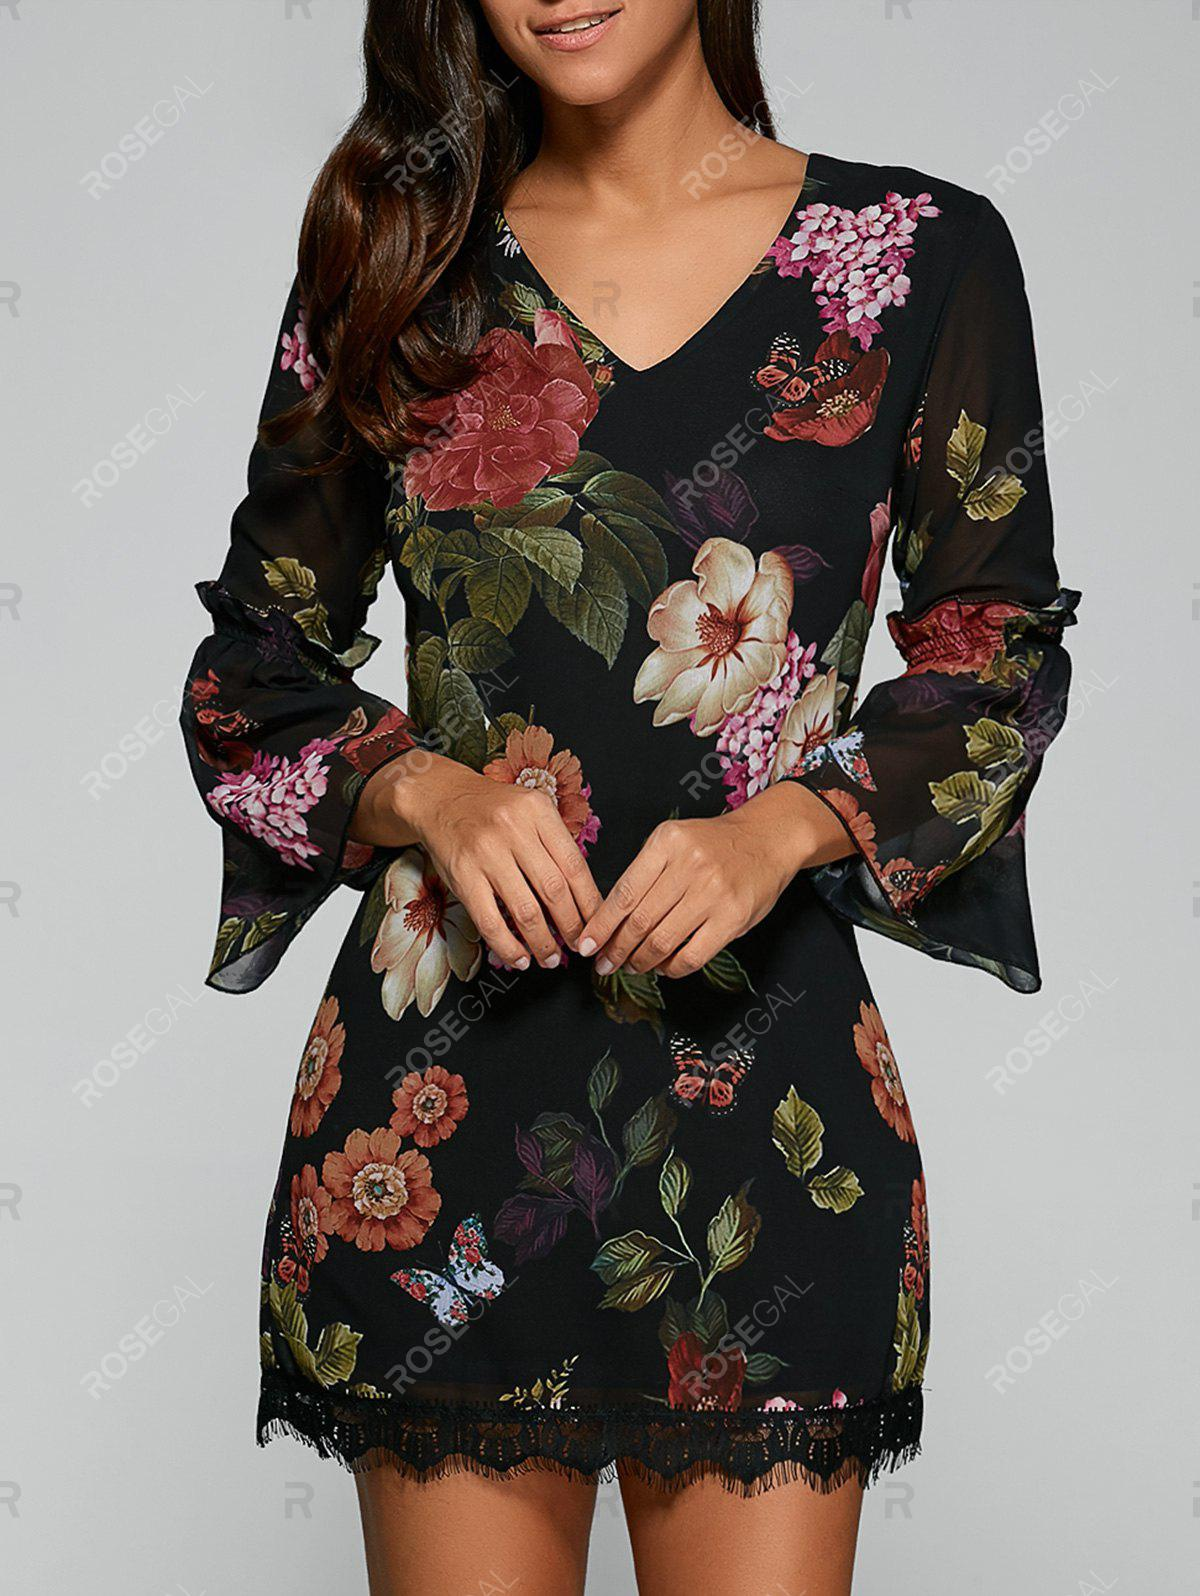 Bell Sleeves Floral Print Laciness DressWOMEN<br><br>Size: L; Color: BLACK; Style: Vintage; Material: Polyester,Spandex; Silhouette: A-Line; Dresses Length: Mini; Neckline: V-Neck; Sleeve Length: 3/4 Length Sleeves; Pattern Type: Floral; With Belt: No; Season: Fall,Summer; Weight: 0.197kg; Package Contents: 1 x Dress;